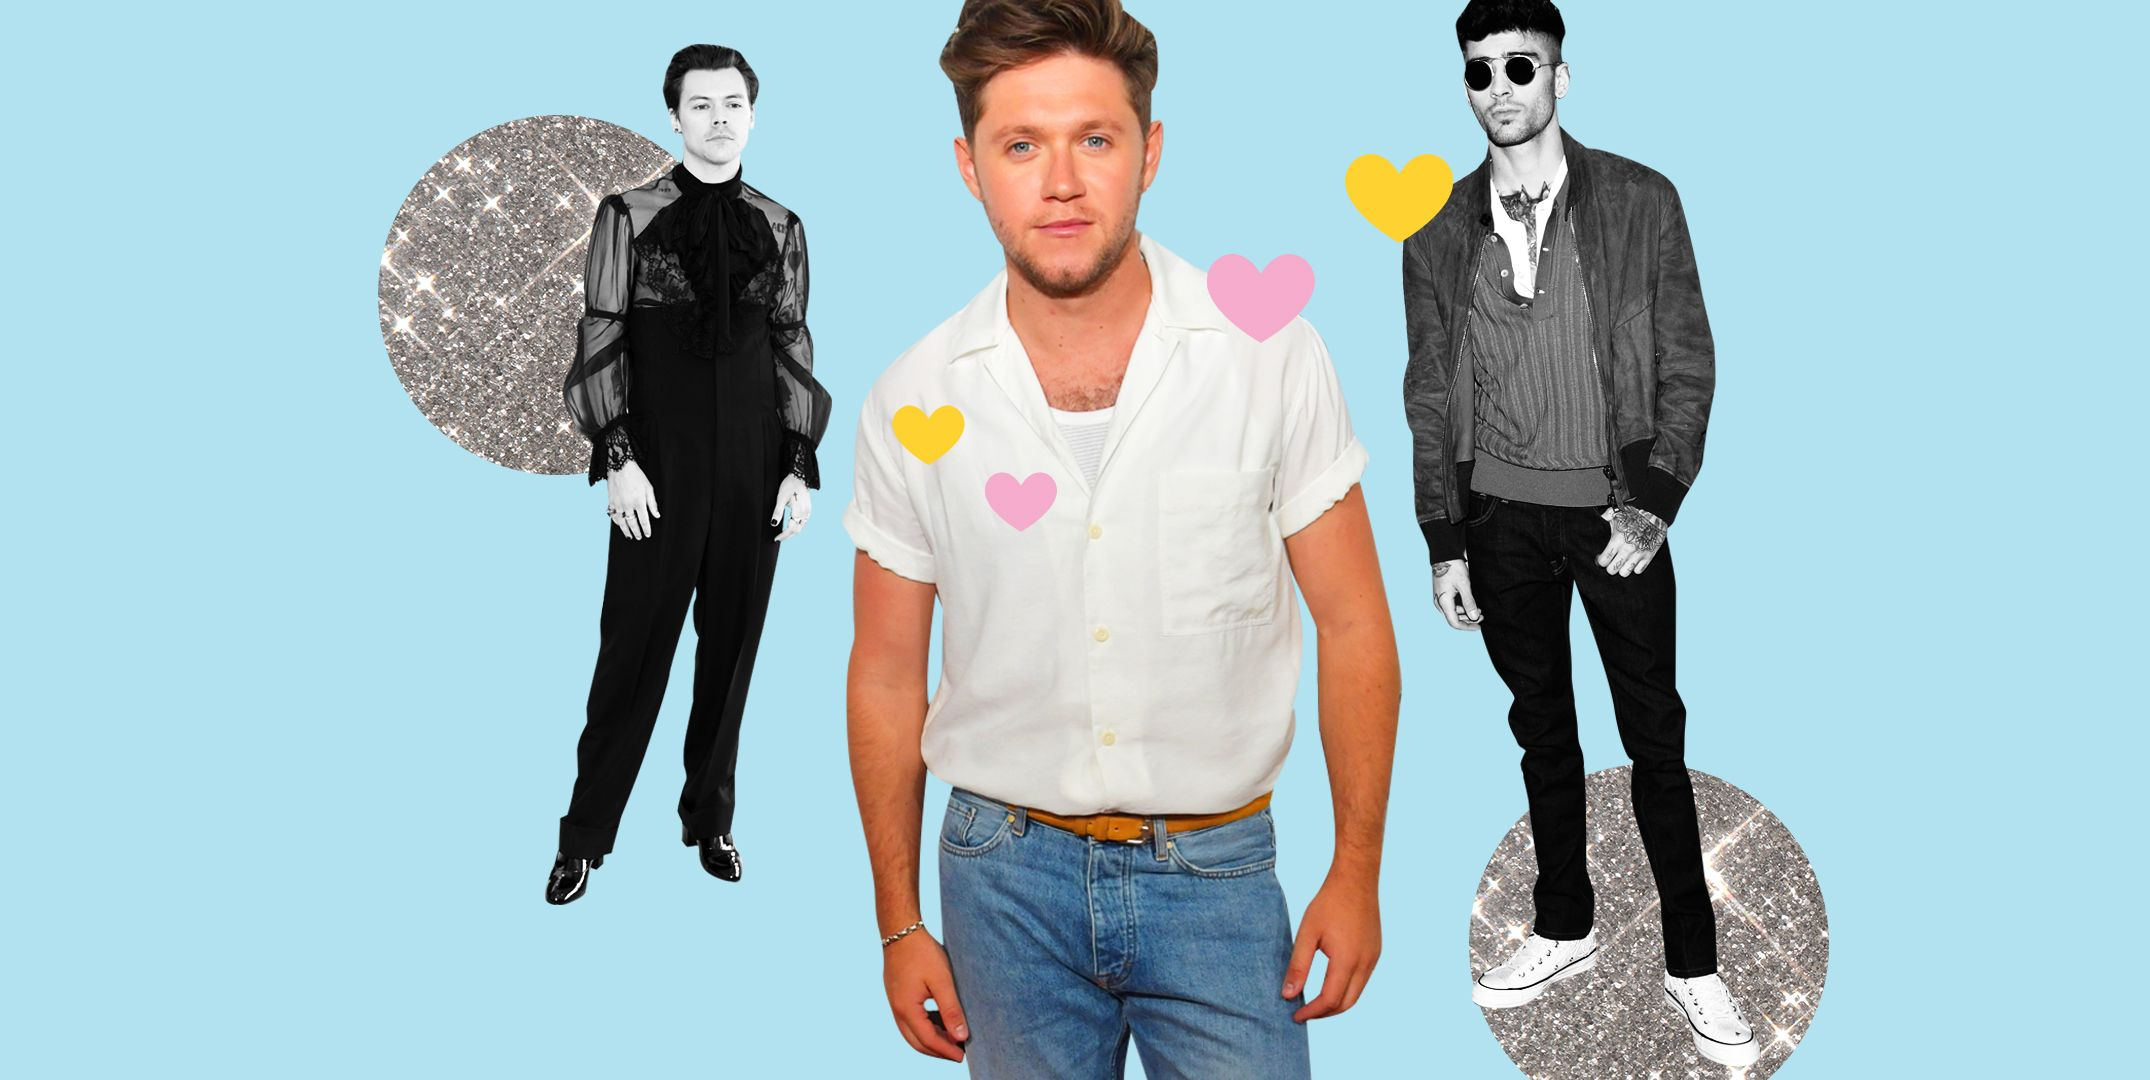 Who are the band members of one direction dating online